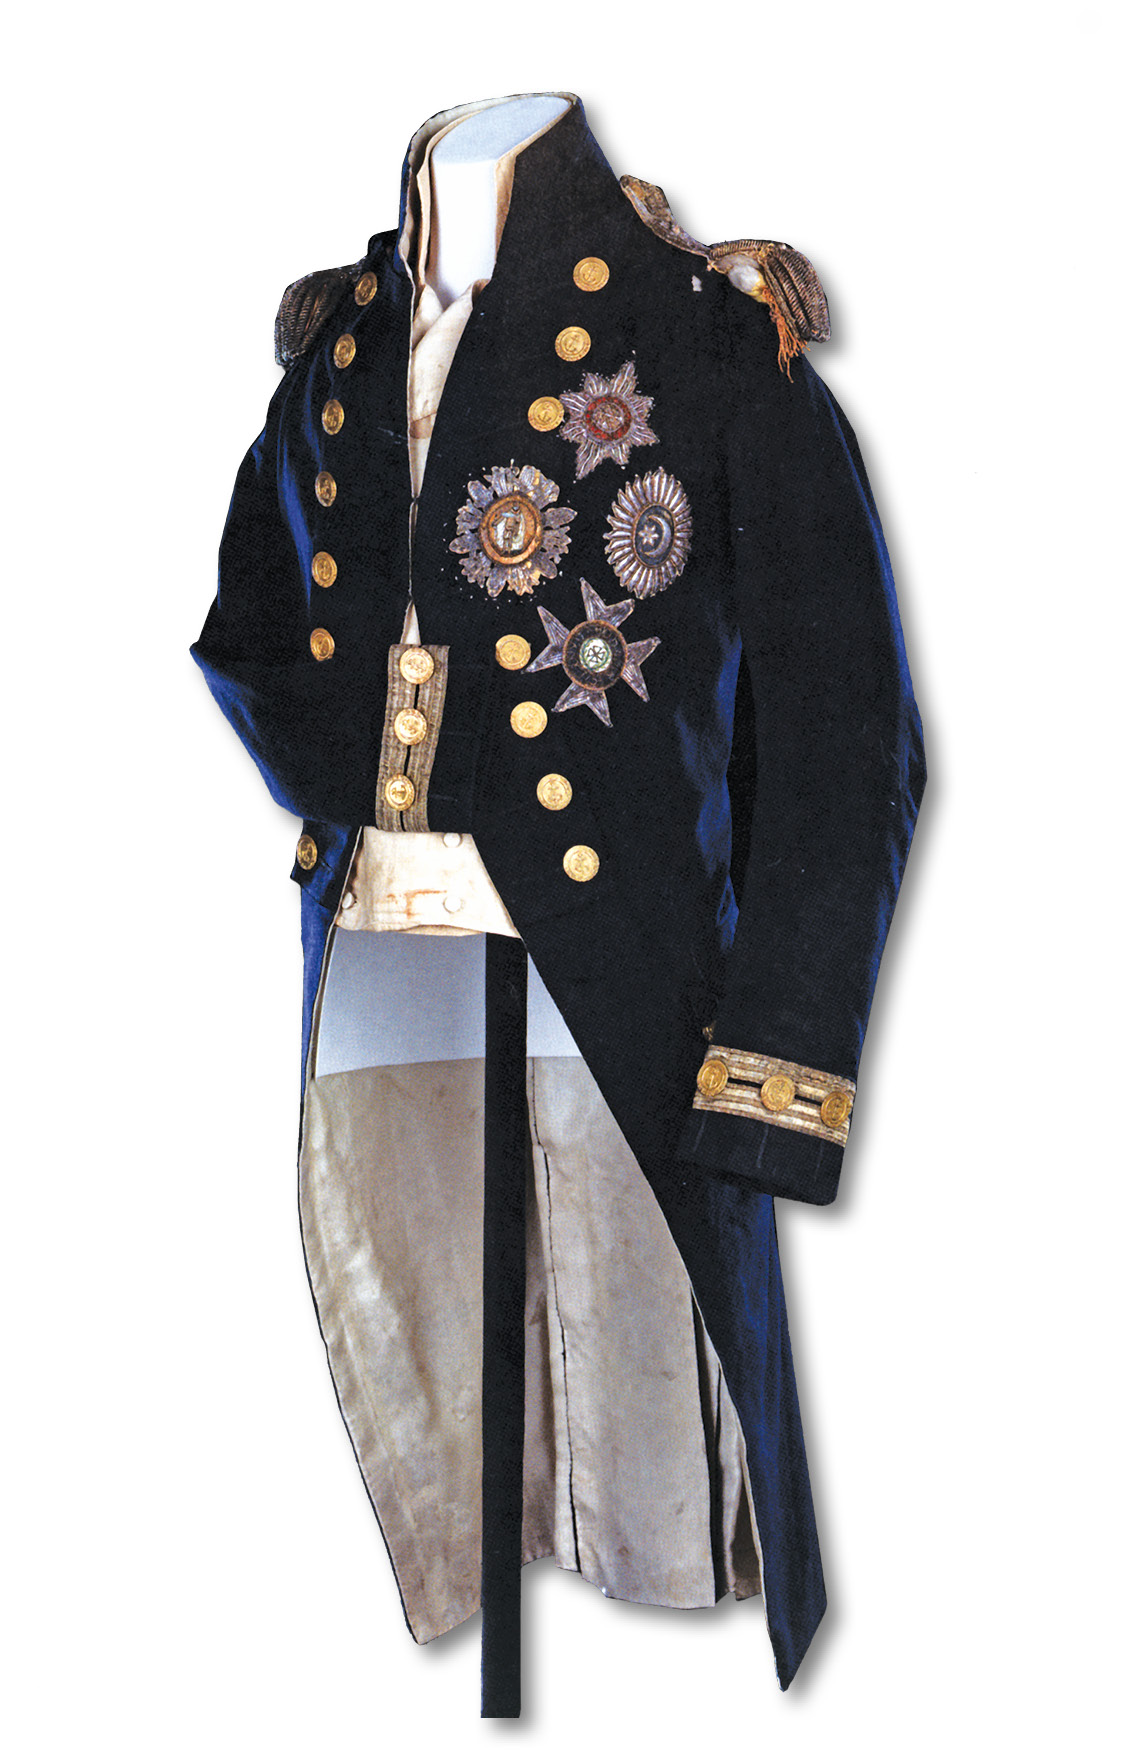 Below Nelson's coat, showing the musket-ball hole in the left shoulder and the torn epaulette.